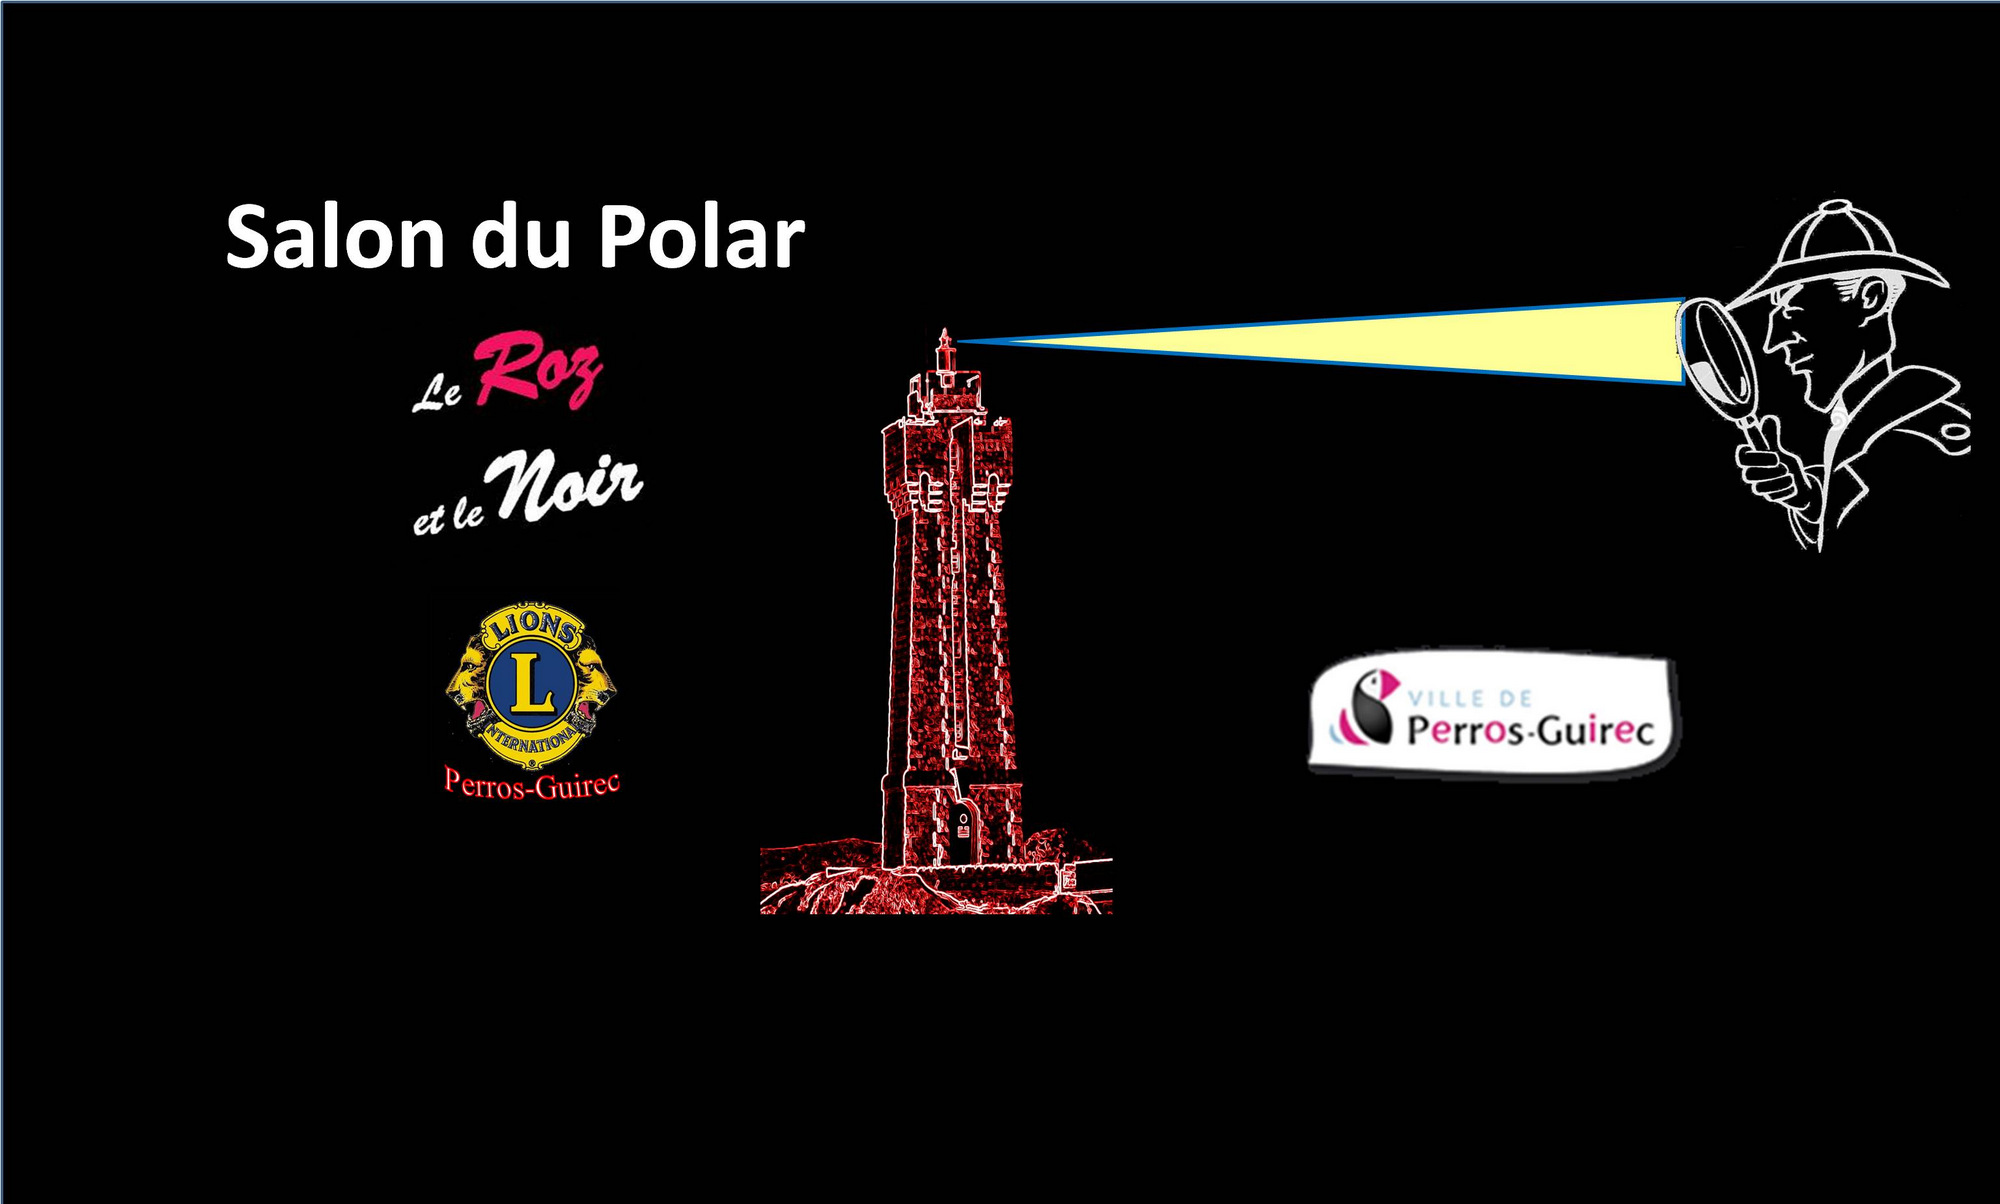 Salon du polar